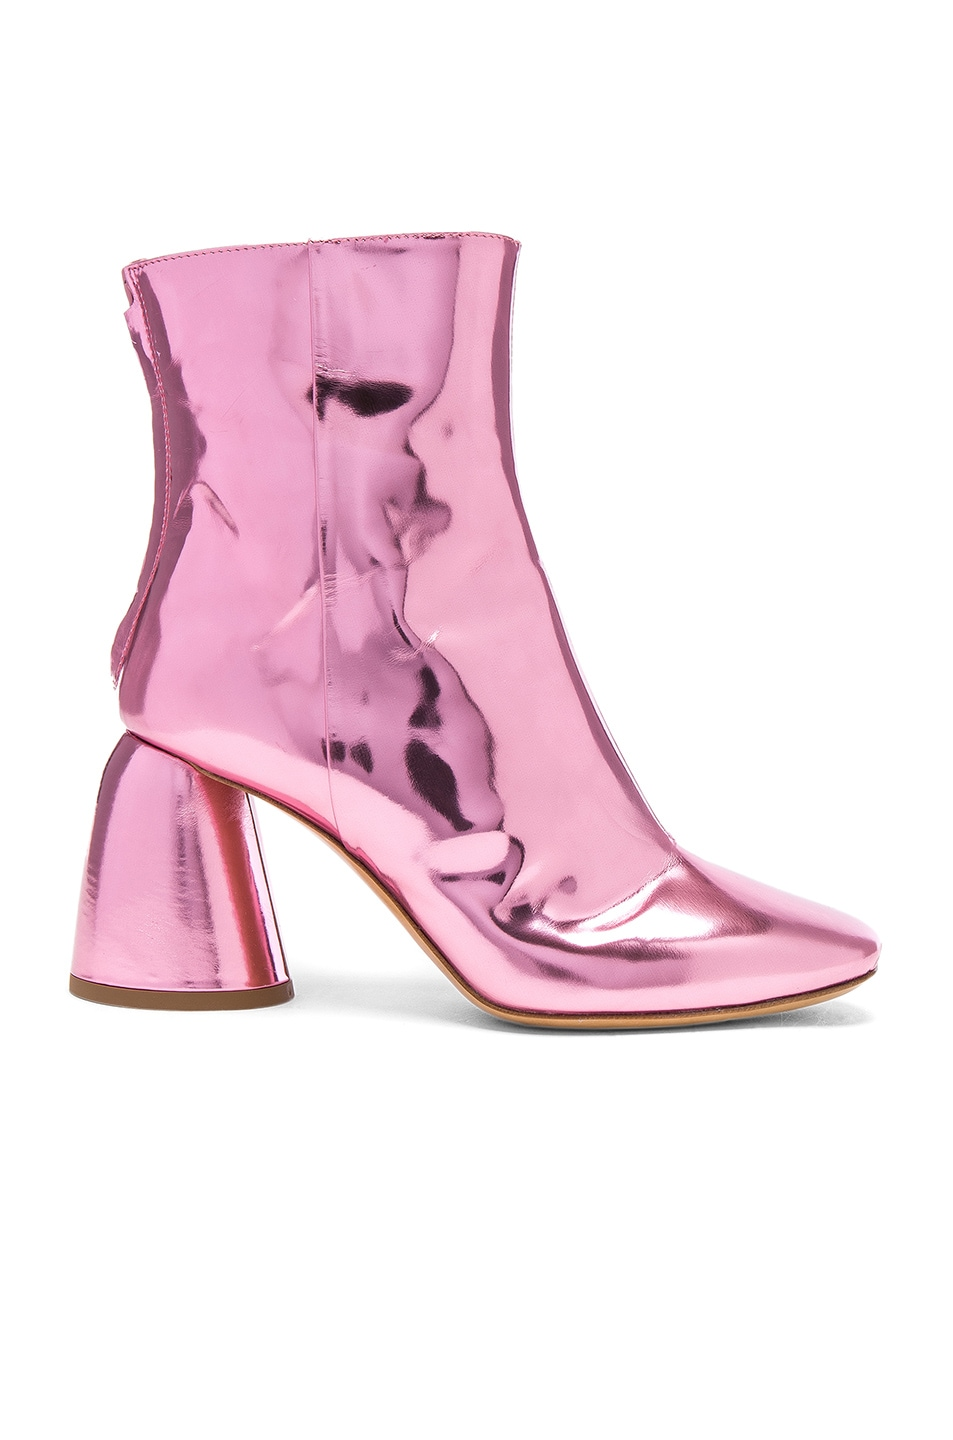 Image 1 of Ellery Patent Leather Jezebels Boots in Pink